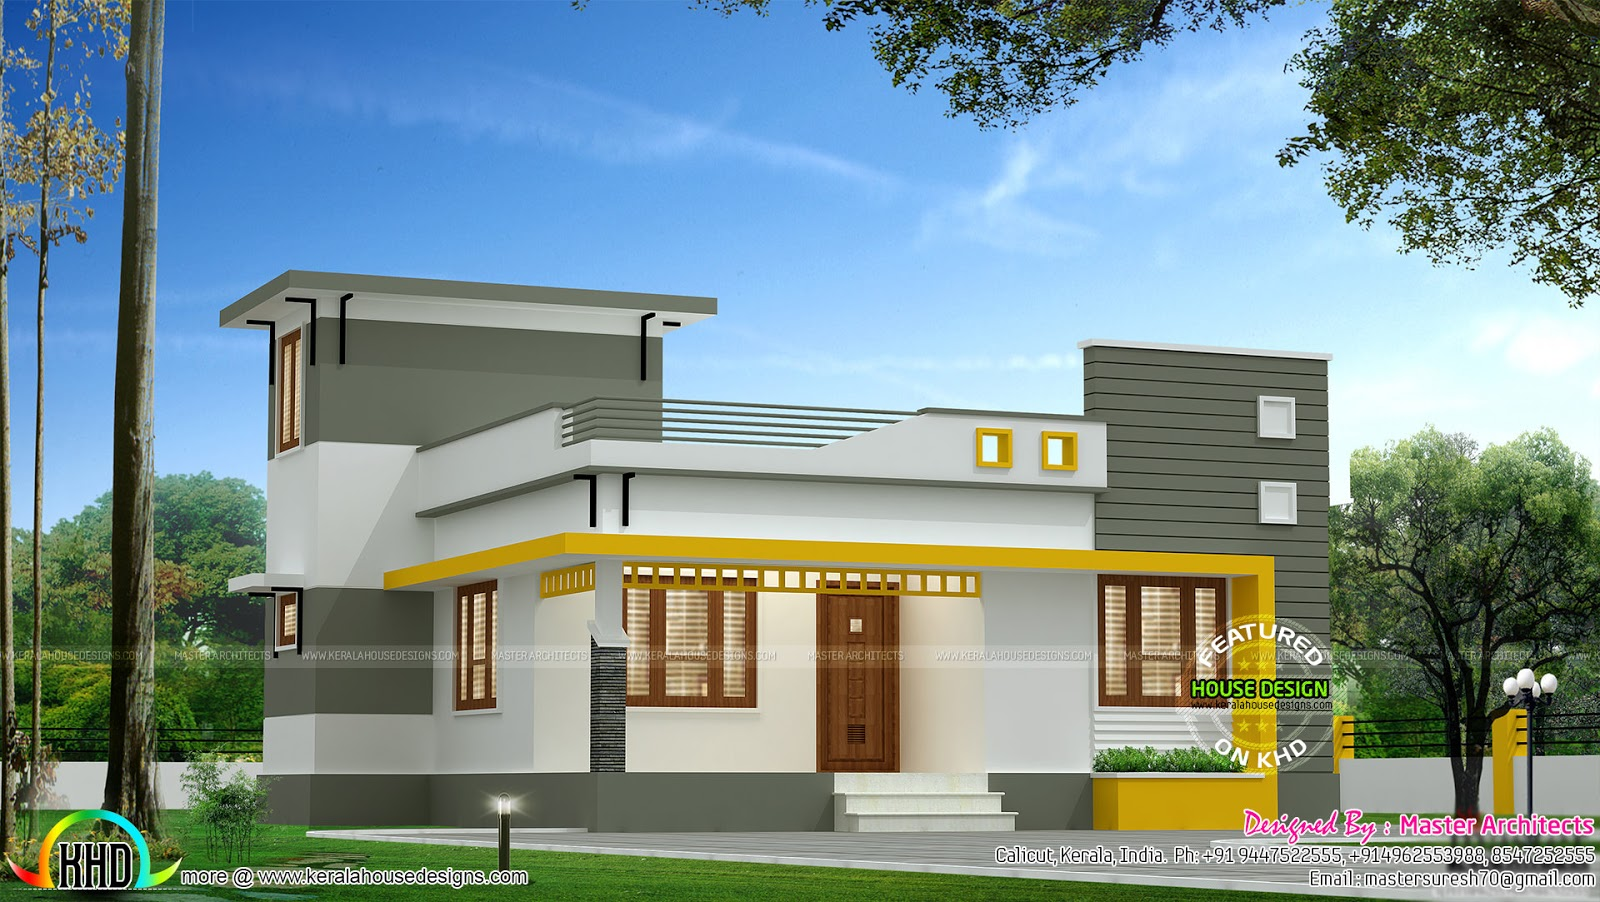 3 bedroom single floor modern architecture home kerala for 3 bedroom contemporary house plans